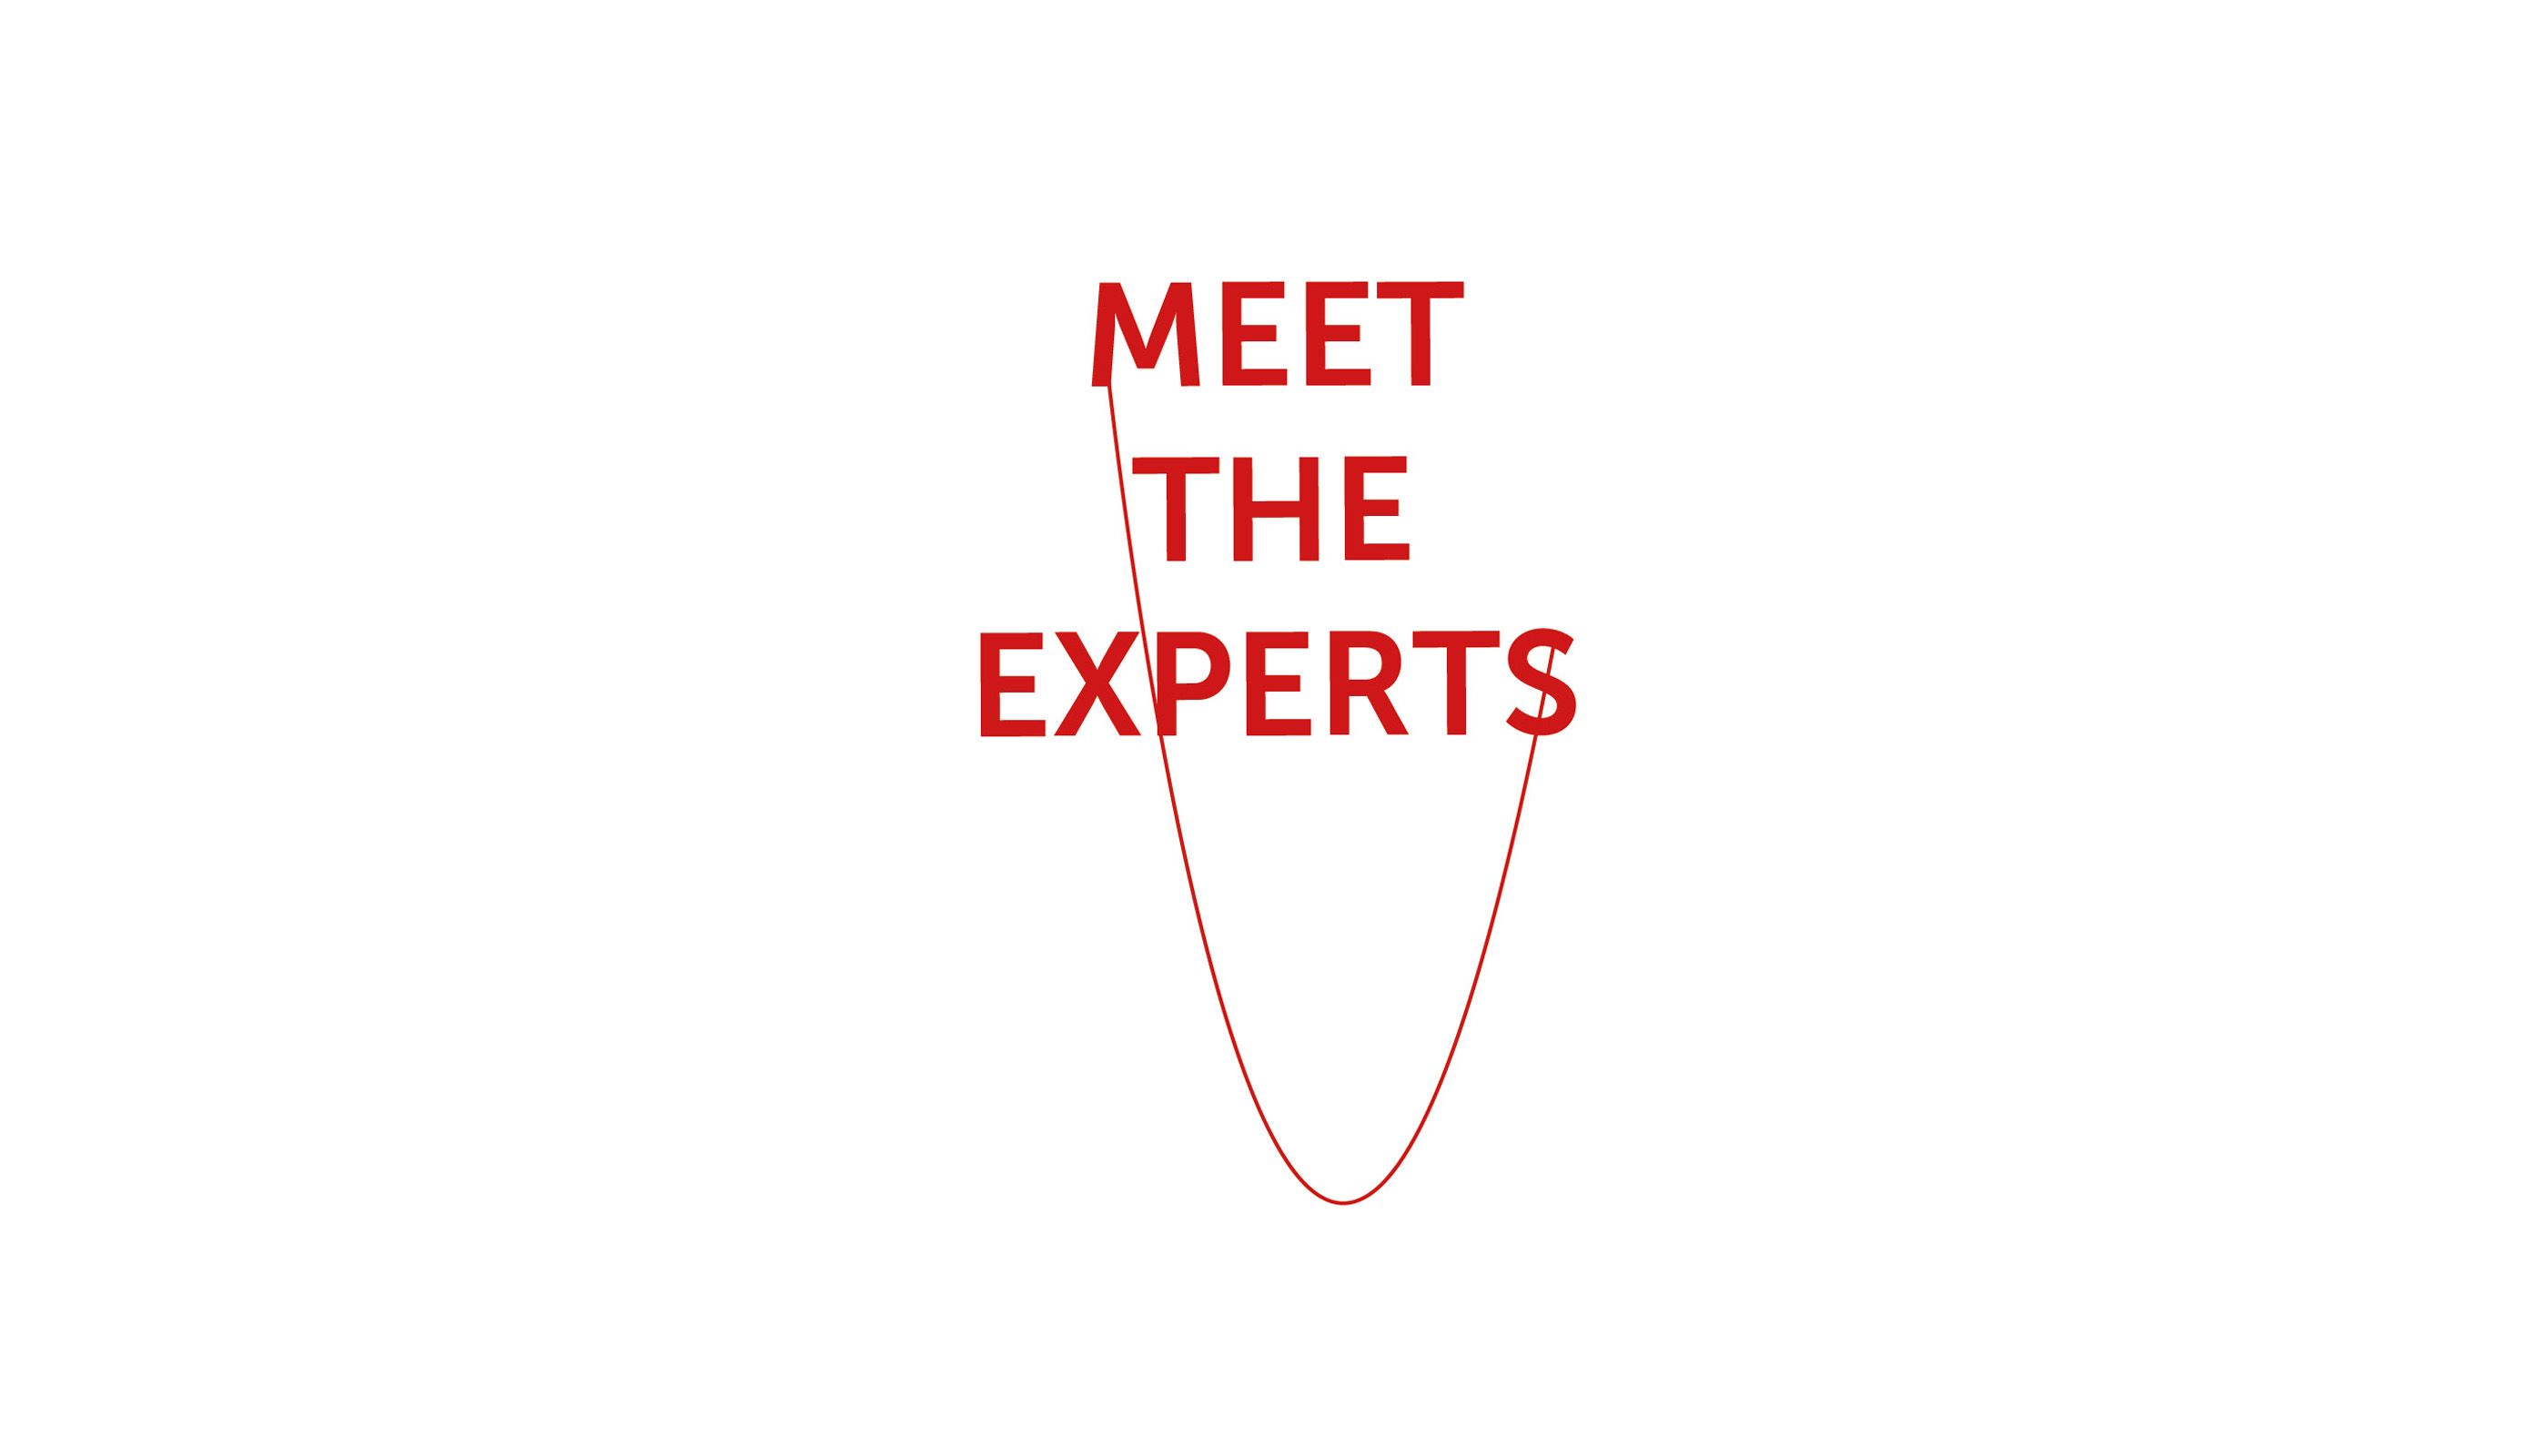 meet_the_experts_strategy_03